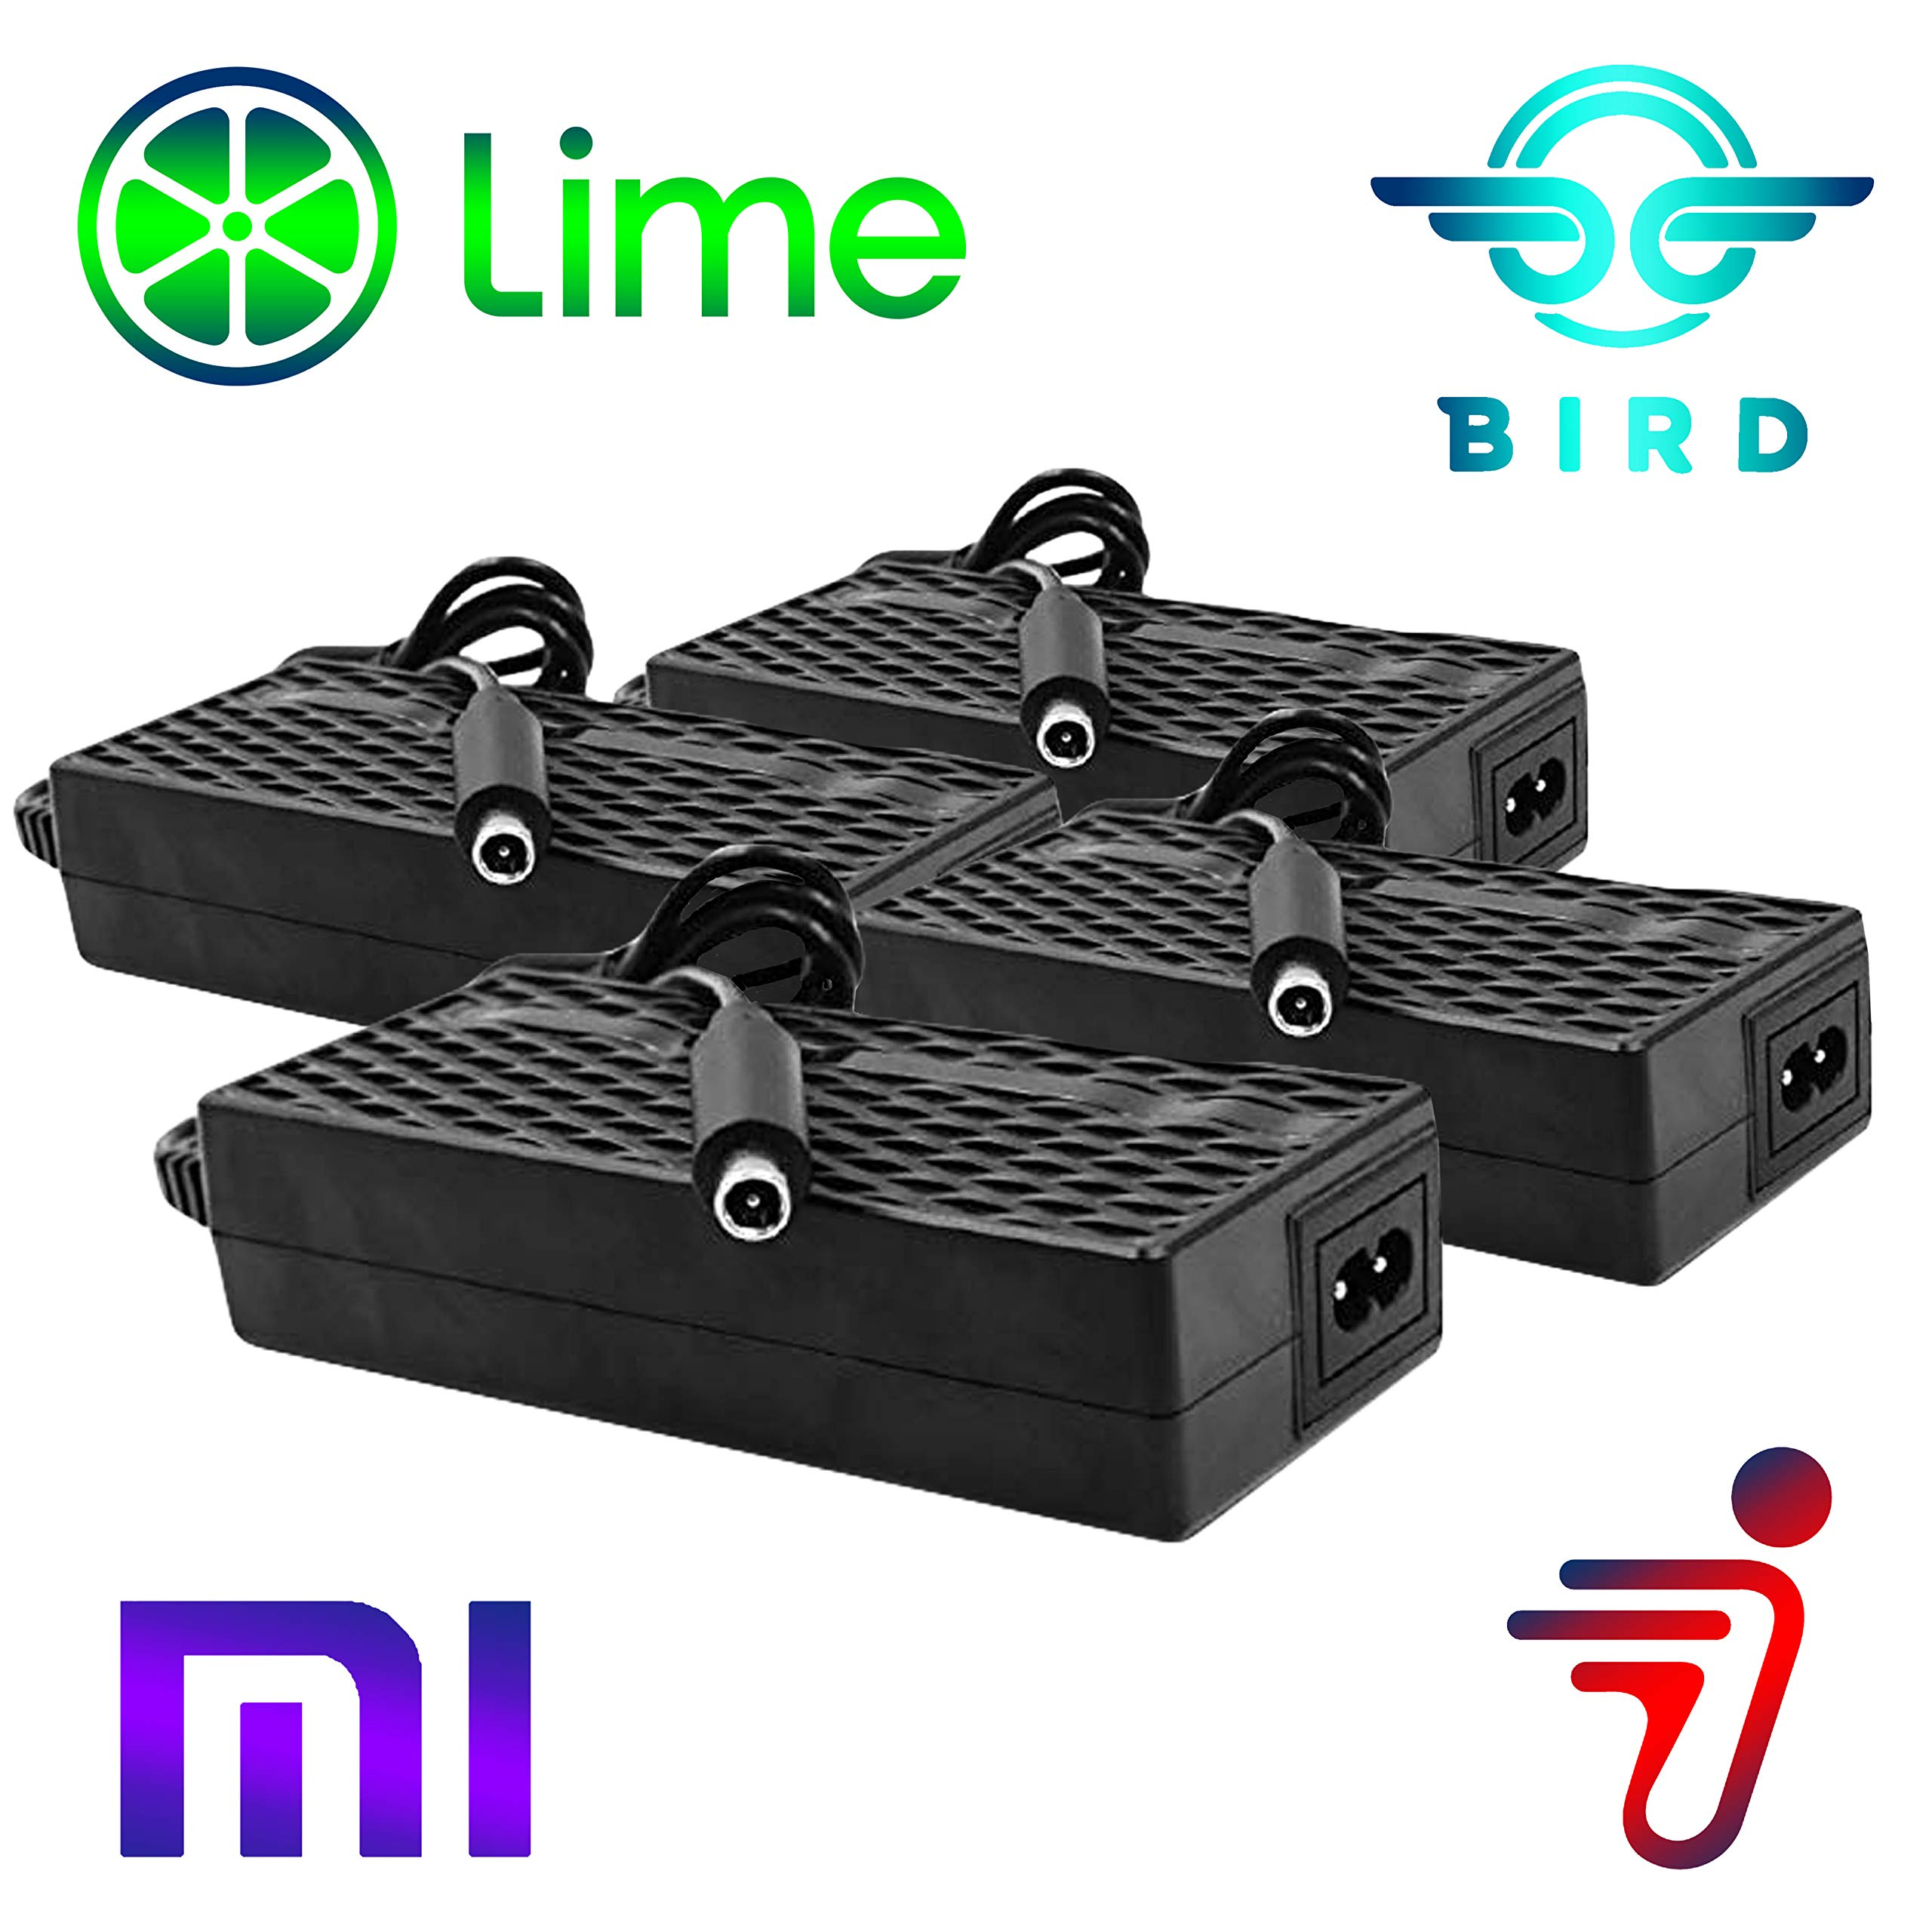 Heavy Duty 4 Pack Bird Lime Electric Scooter Chargers UL Certified Compatible with Xiaomi Mijia m365 Segway Ninebot ES 1 2 4 by Titan Pack by TitanPack